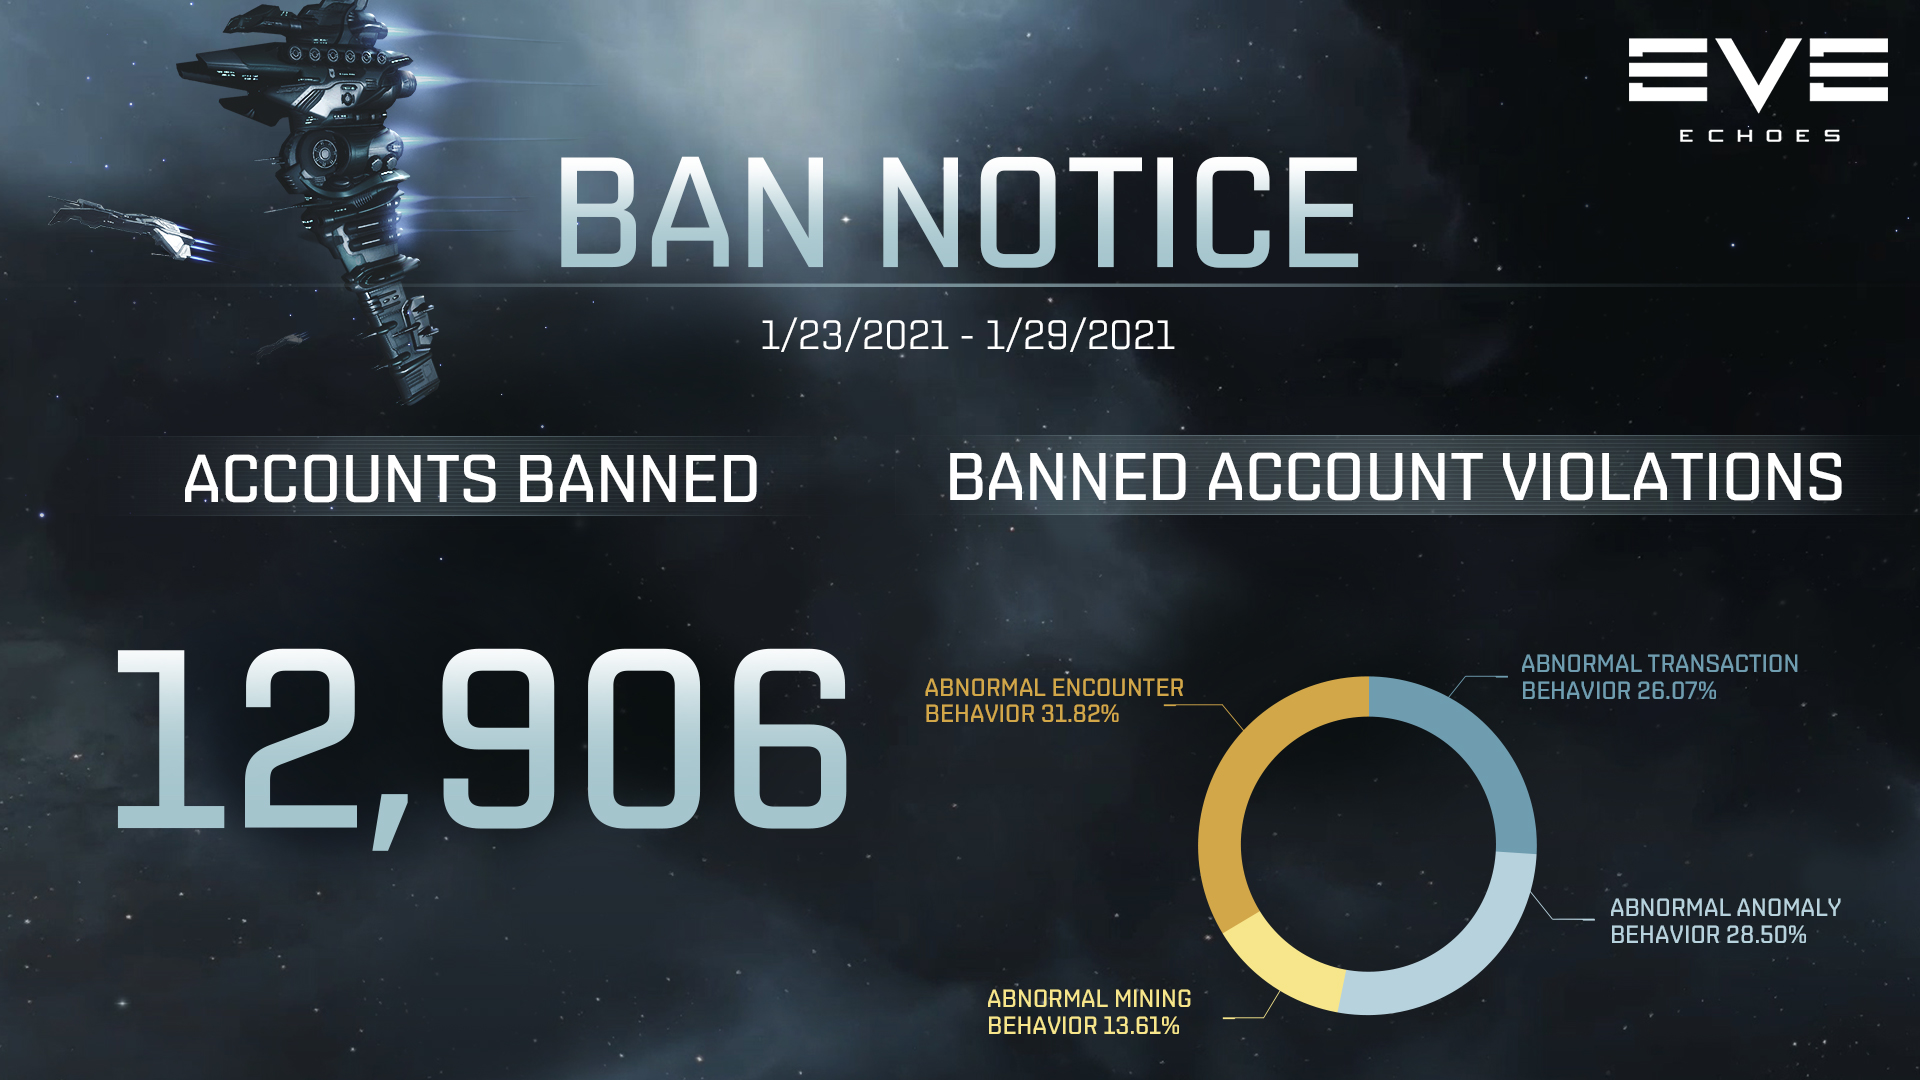 Ban Notice for 01/23-01/29